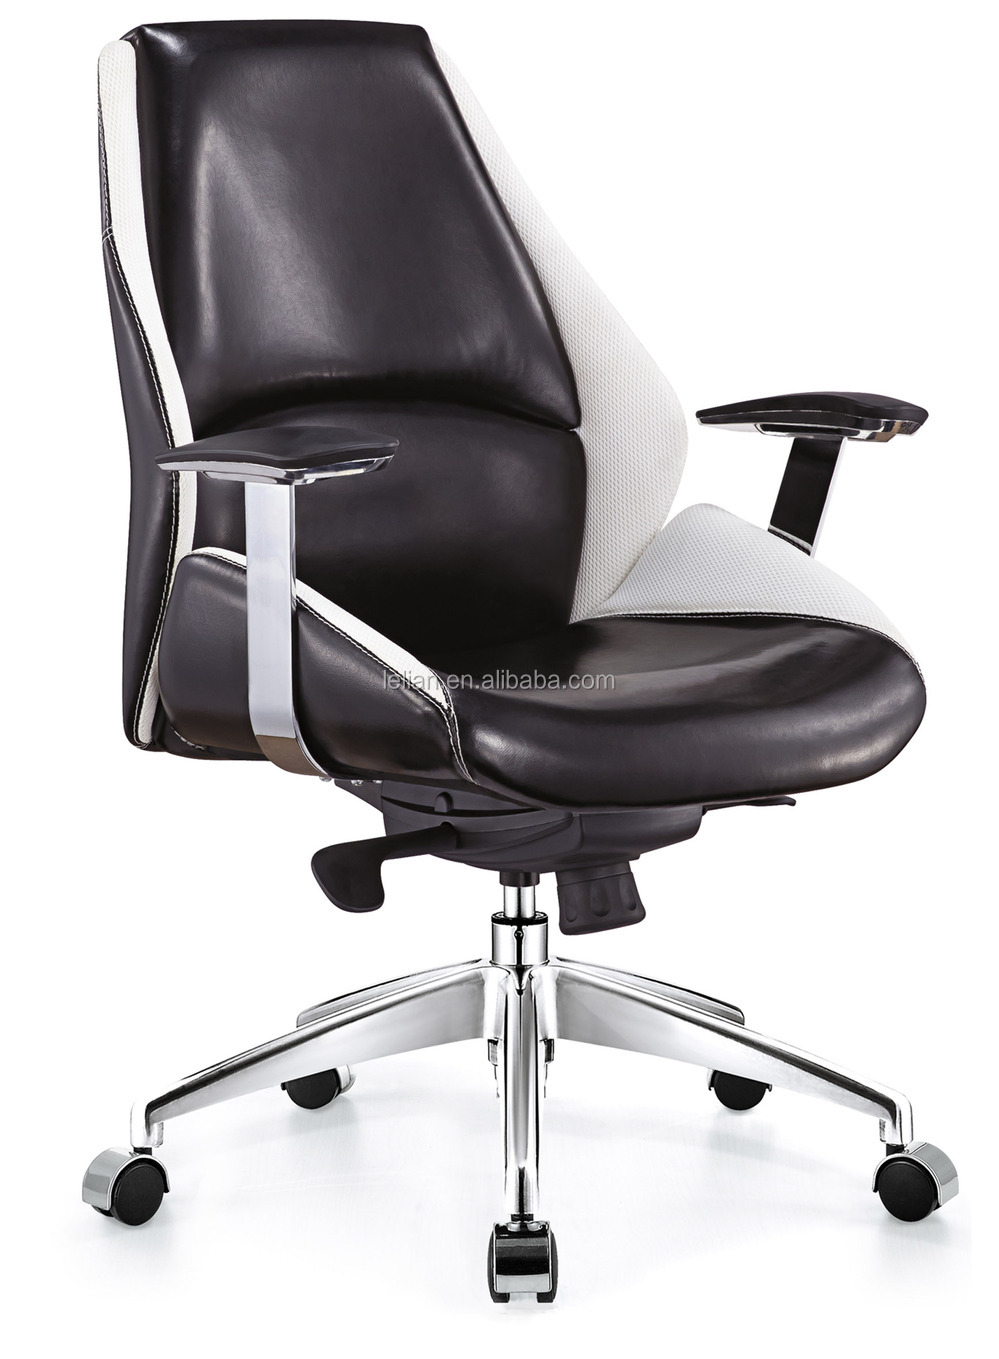 office chairs without wheels daily need products executive